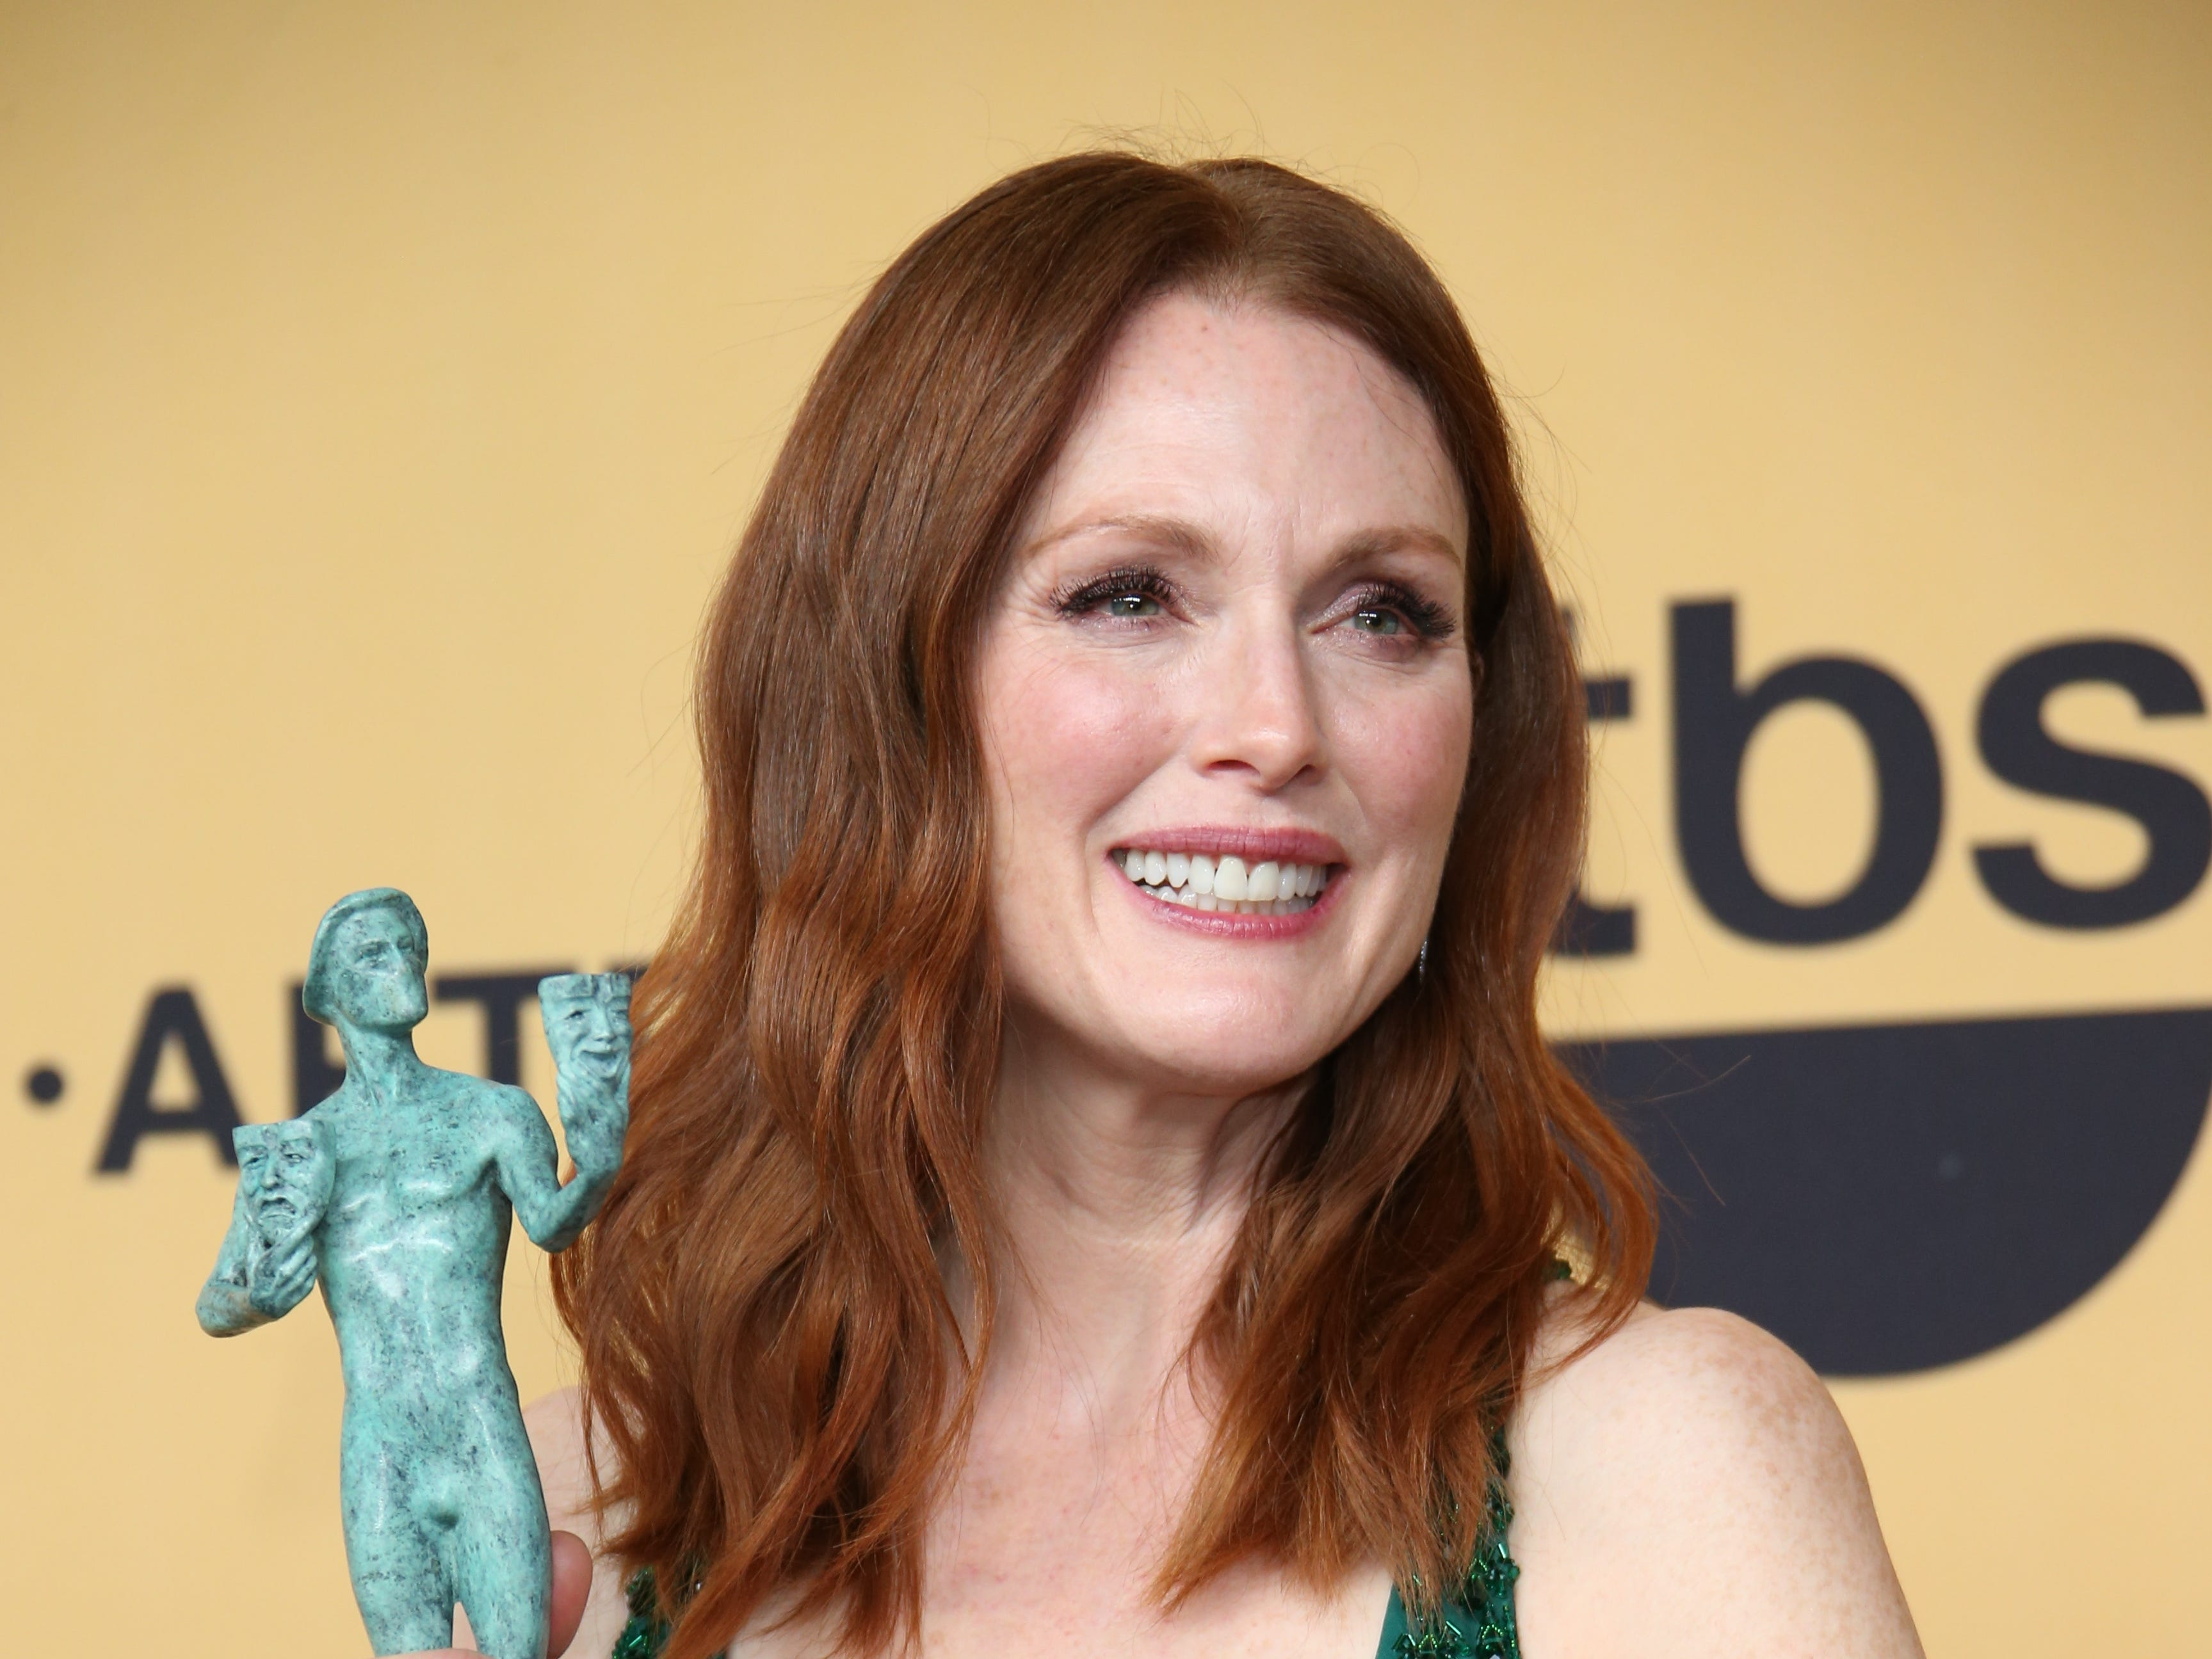 Julianne Moore poses in the photo room with her award for Female Actor in a Leading Role at the 20th Screen Actors Guild Awards held at the Shrine Auditorium in Los Angeles in 2015.